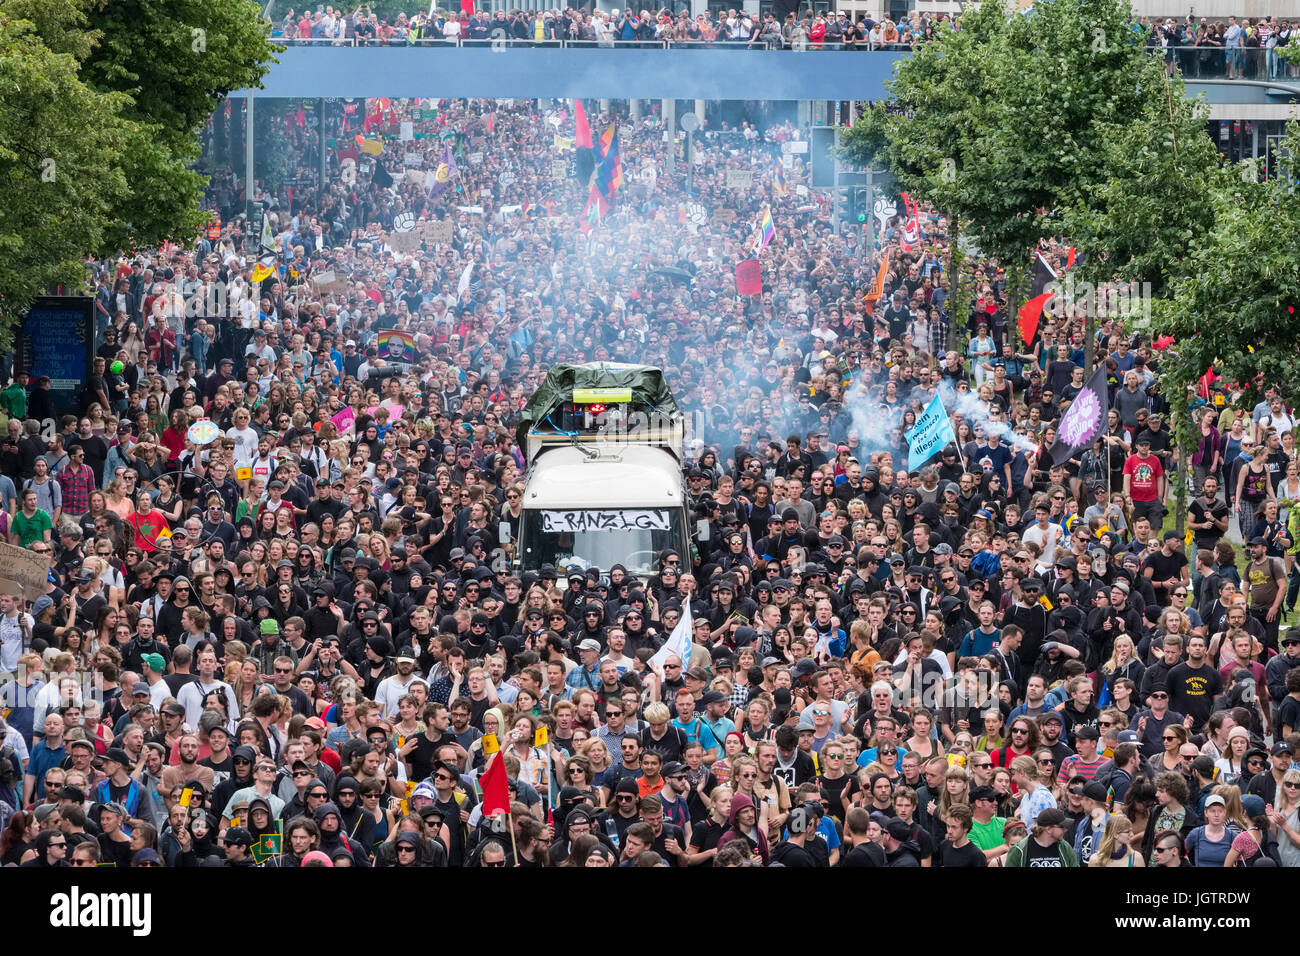 8th July, 2017. Hamburg, Germany. large demonstration march through central Hamburg protesting against G20 Summit - Stock Image